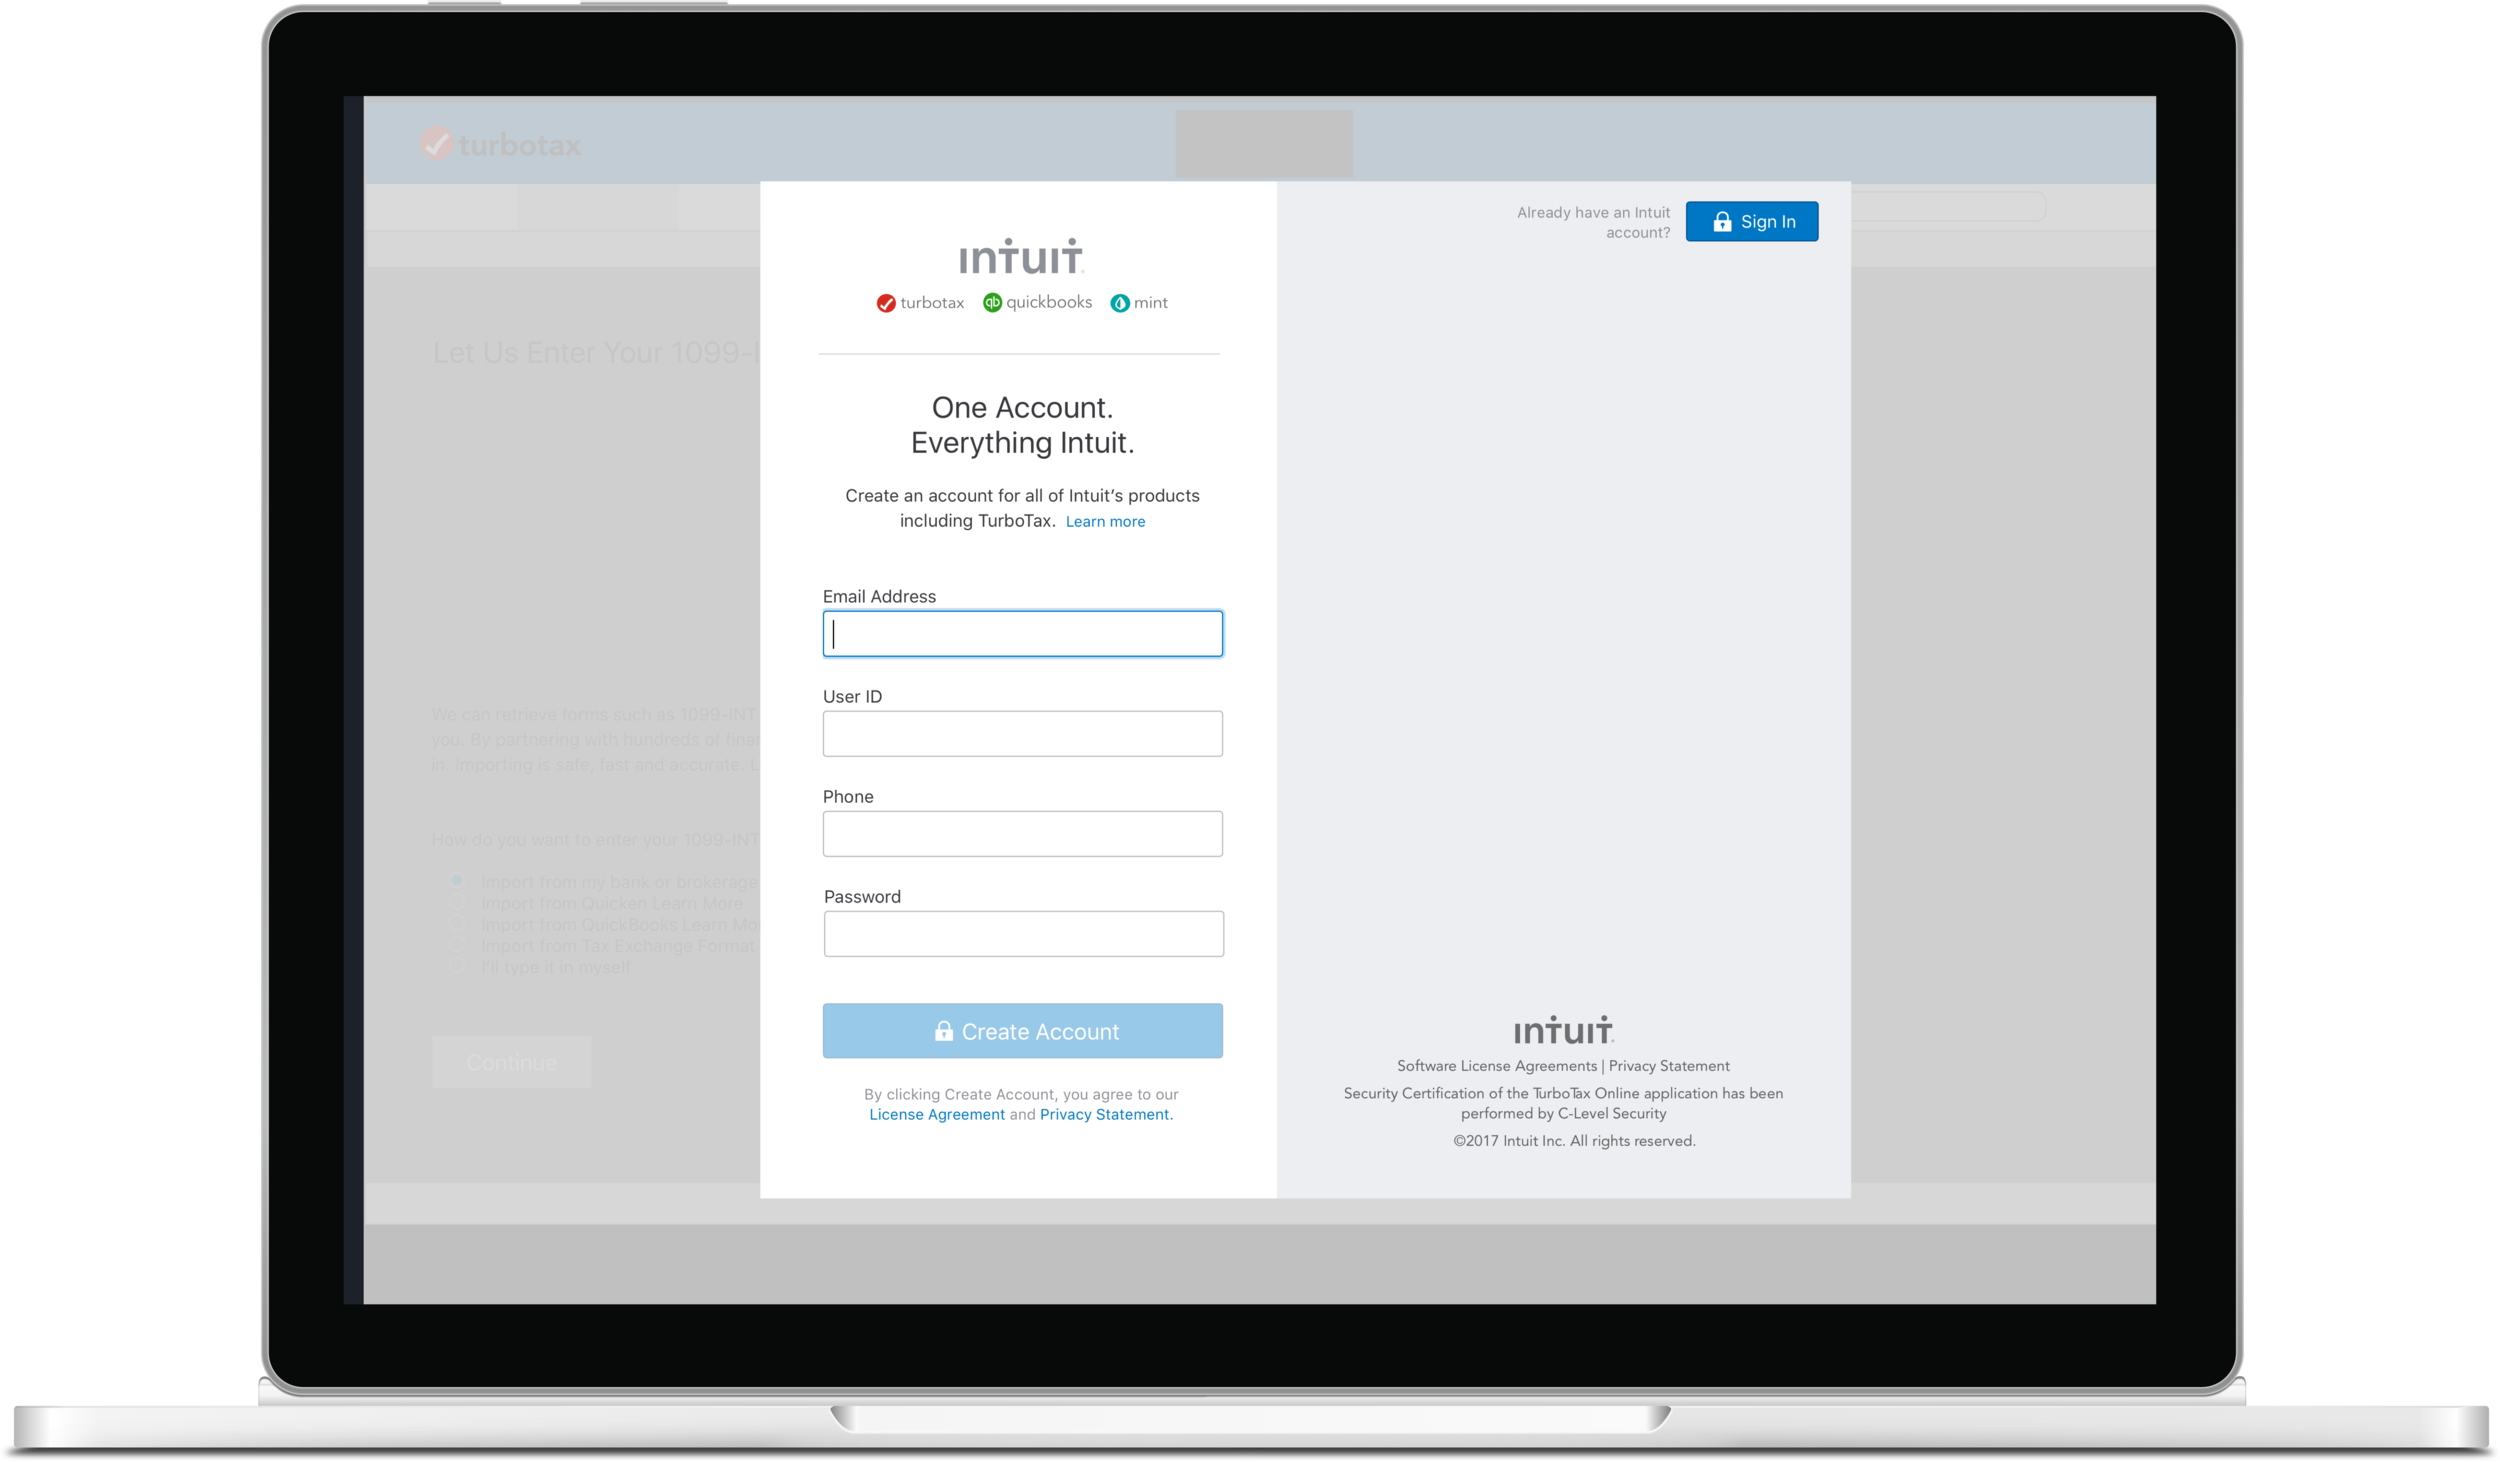 Turbotax Desktop Sign In - The TurboTax desktop application did not have an option for the user to sign in to an Intuit account within the app. My job was to figure out how to implement the sign in button into the existing software.